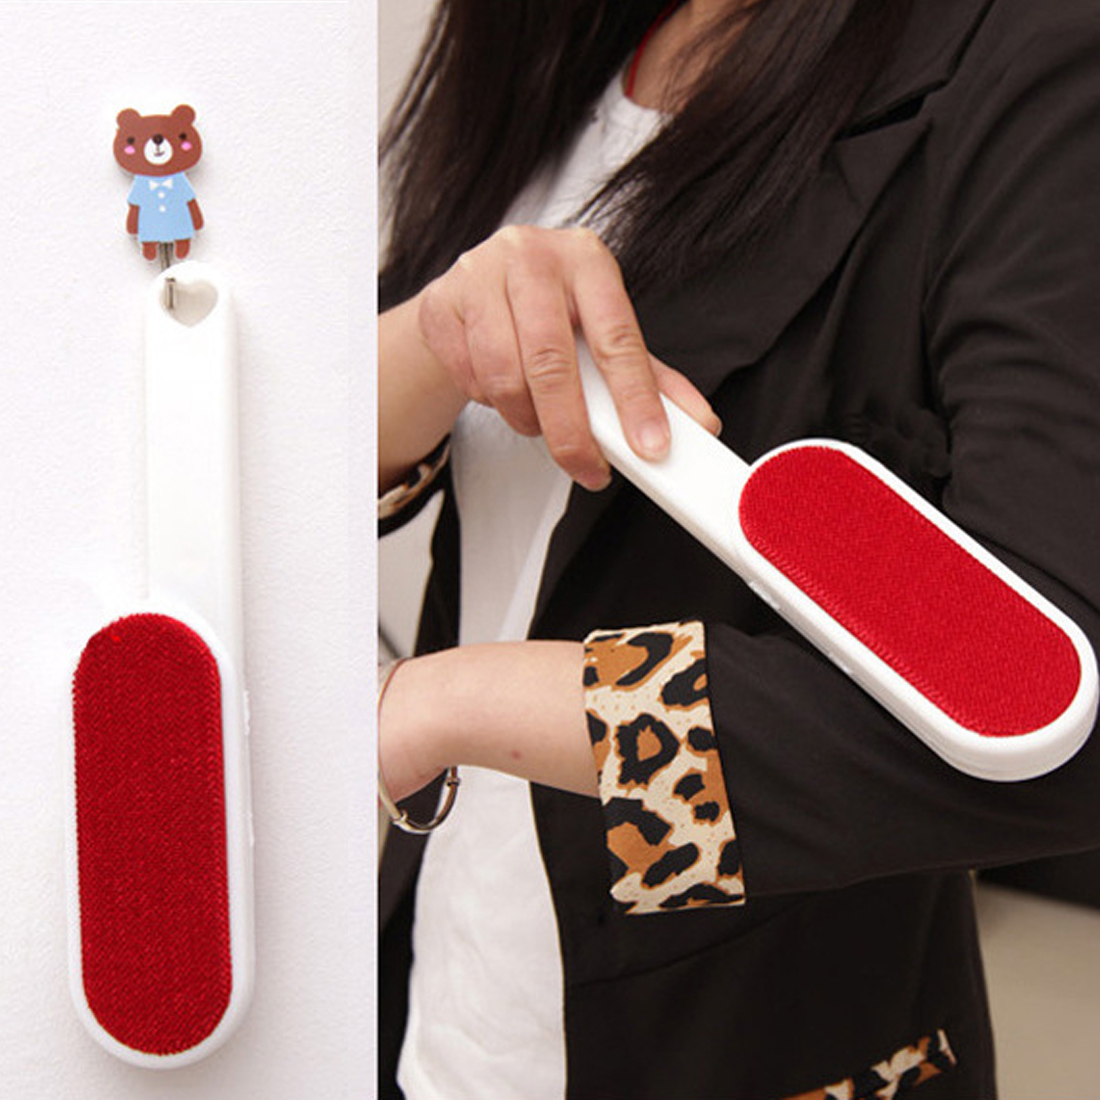 Best Sale 1pc Magic Lint Dust Brush Pet Hair Remover Clothing Cloth Dry Cleaning with Rotatable Static Brush Clothes